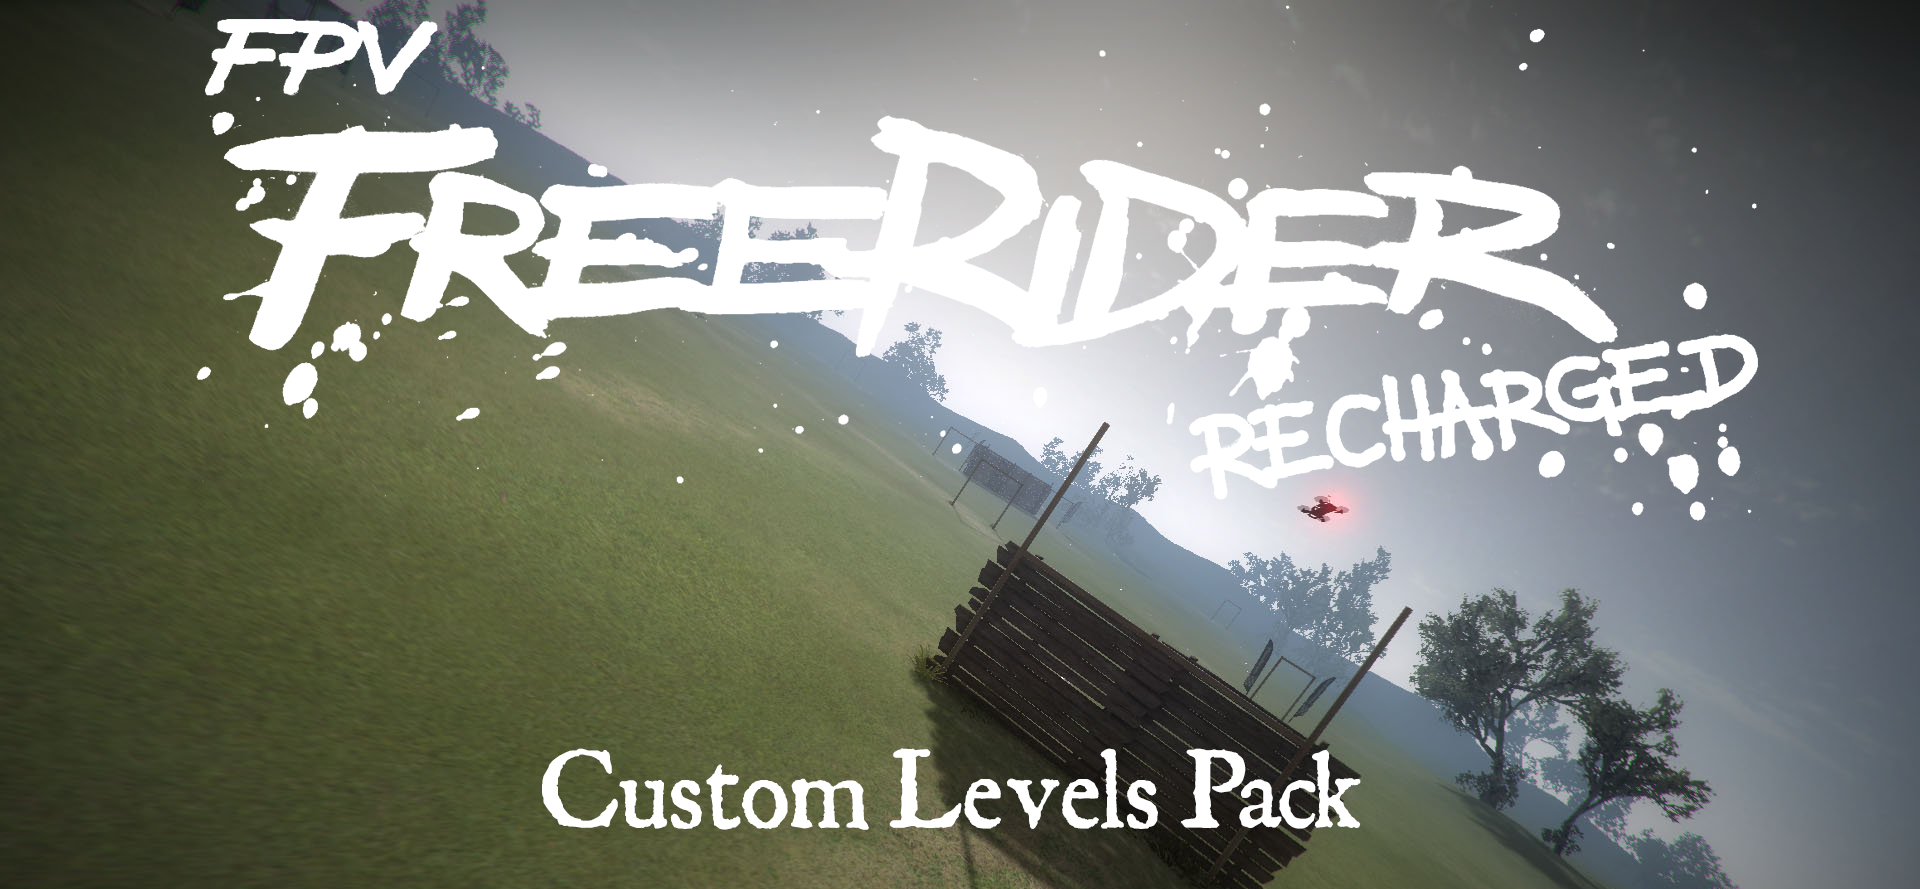 FPV Freerider Recharged Custom Level Pack